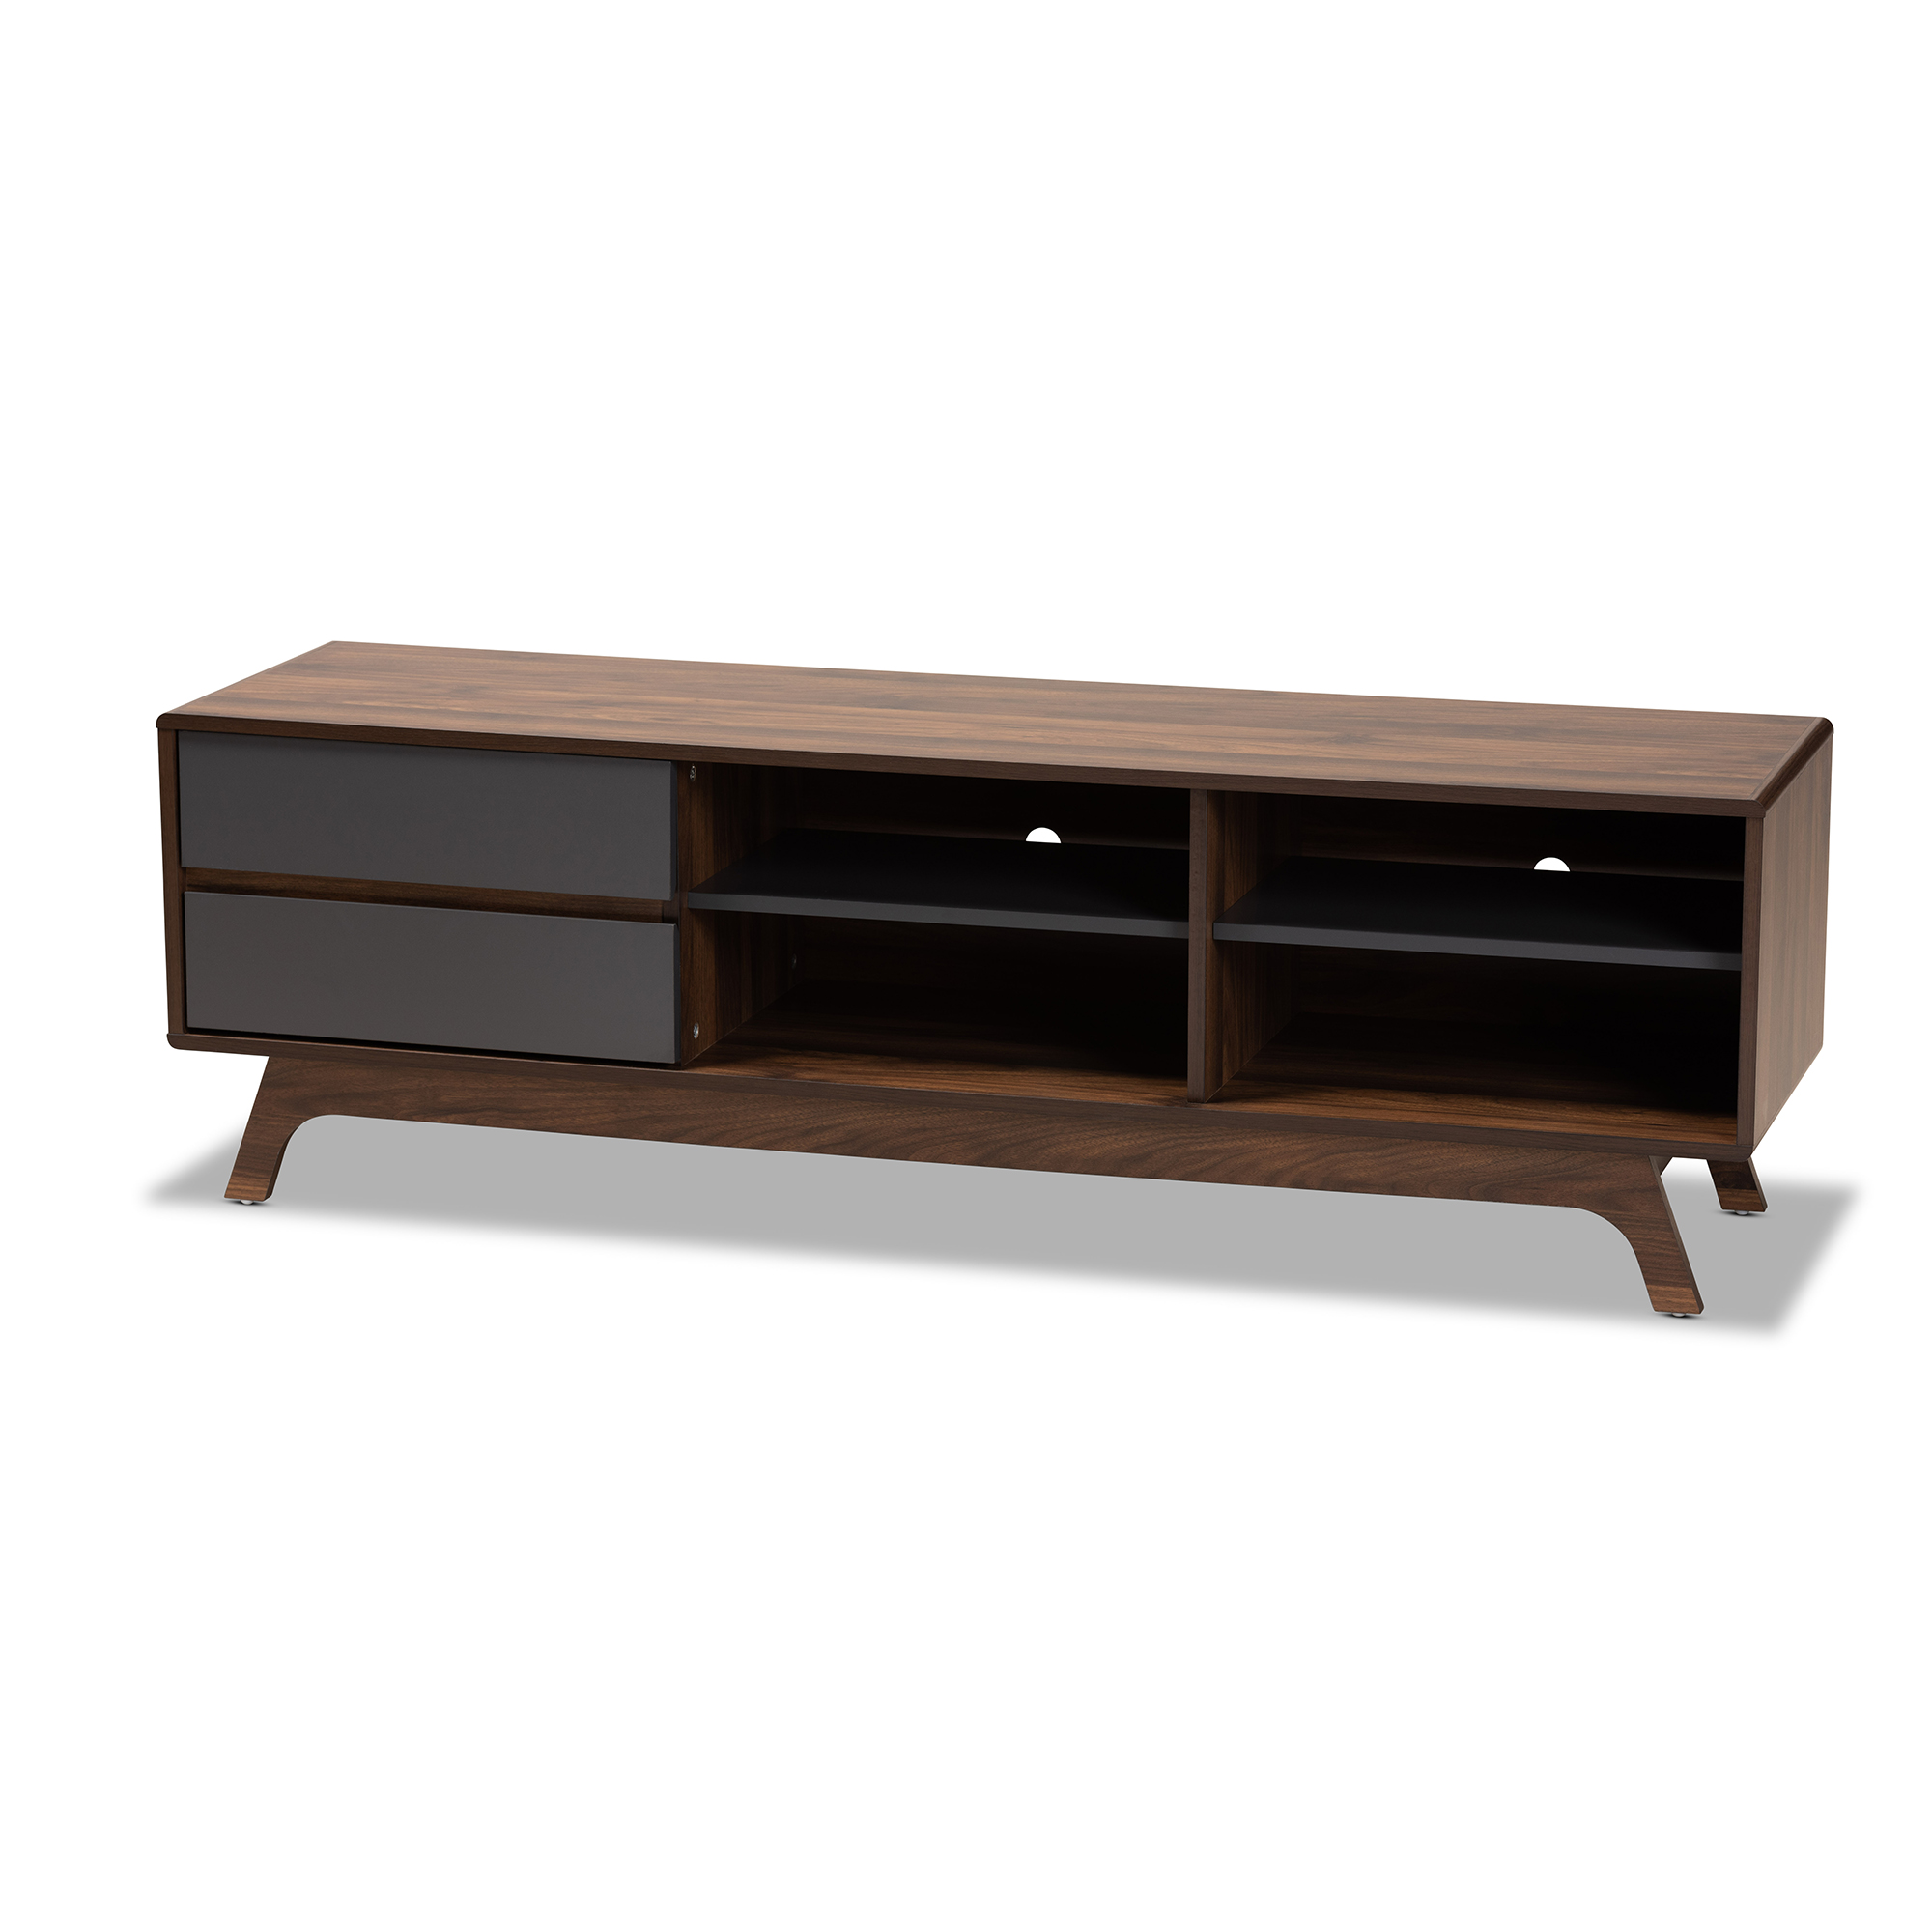 Baxton Studio Koji Particleboard TV Stand - Grey/Walnut